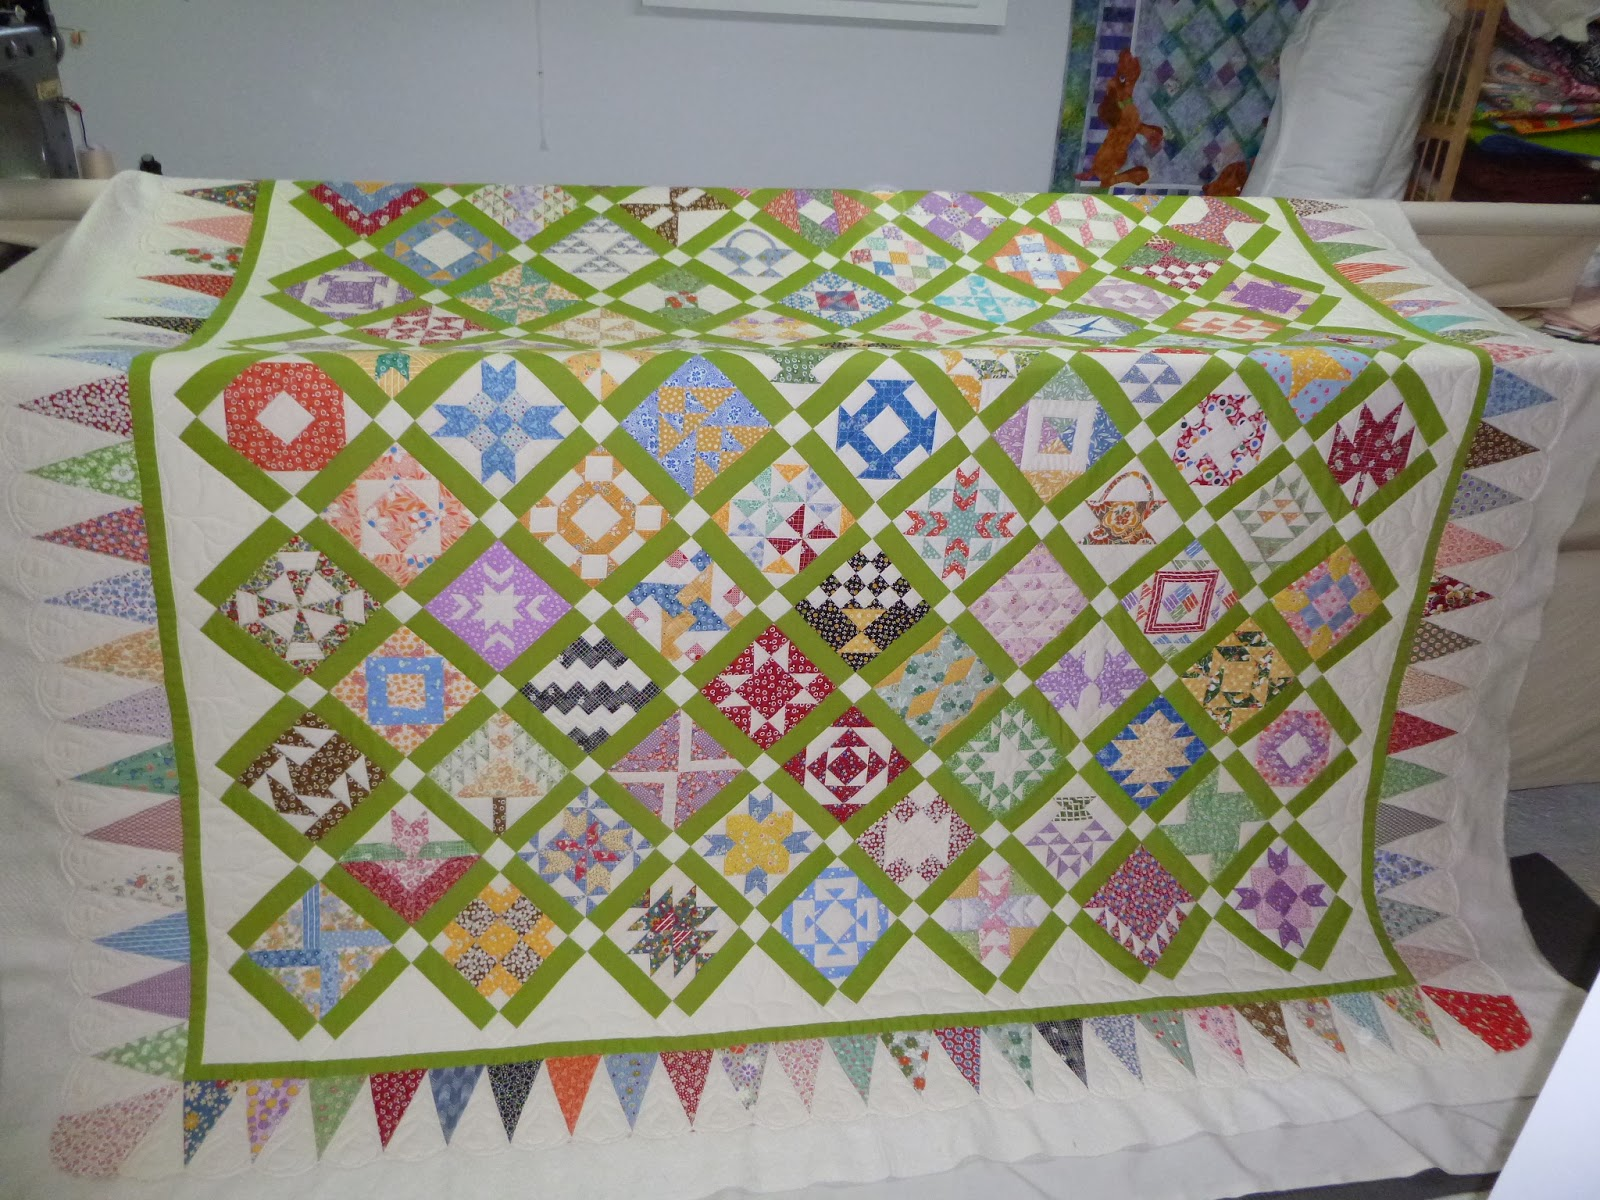 Linda's Quiltmania: Sonja's Farmer's Wife Quilt : the farmers wife quilt - Adamdwight.com